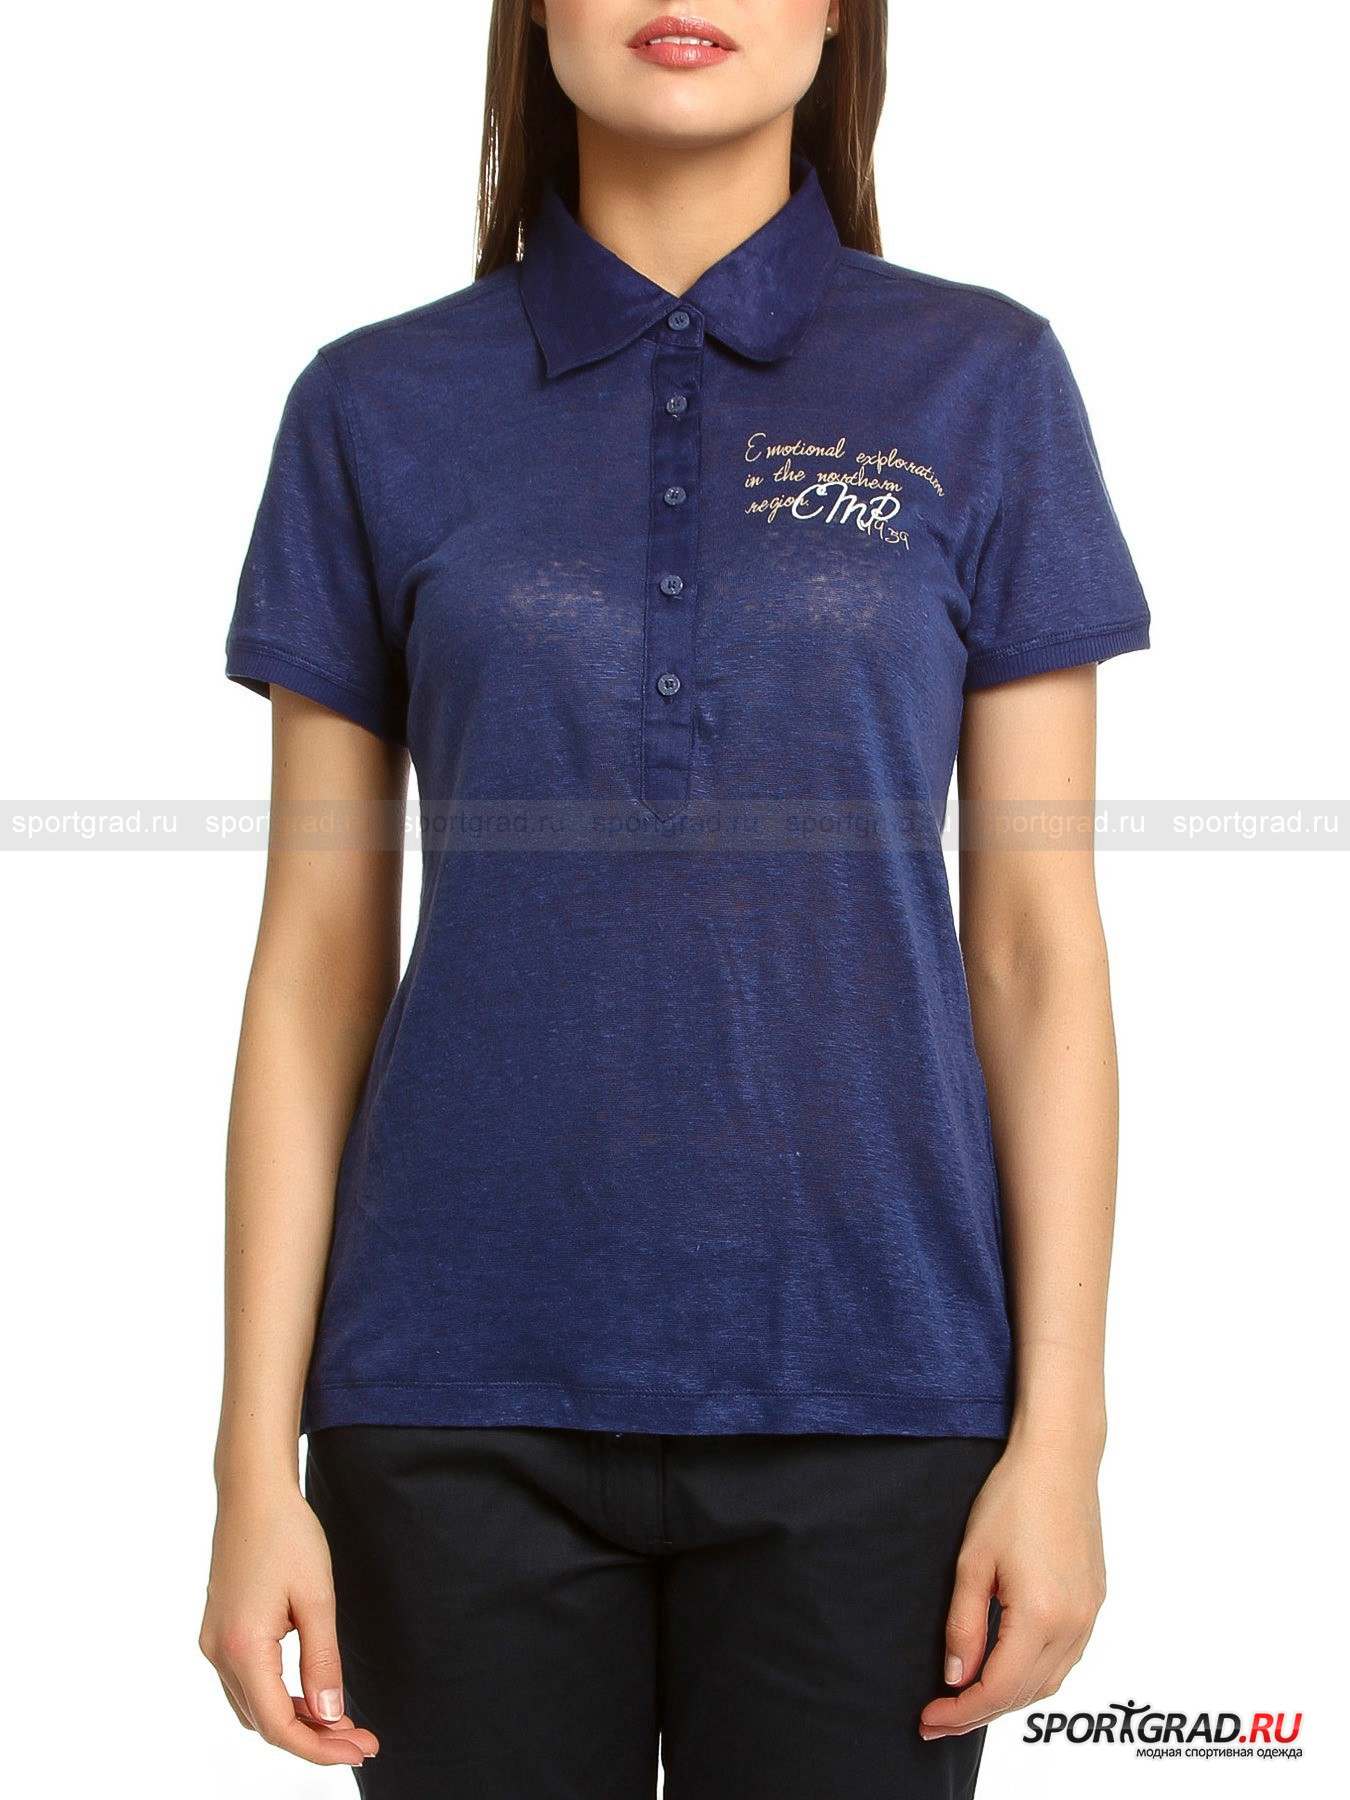 ���� ������� ������� LADY POLO JERSEY/LINEN CAMPAGNOLO